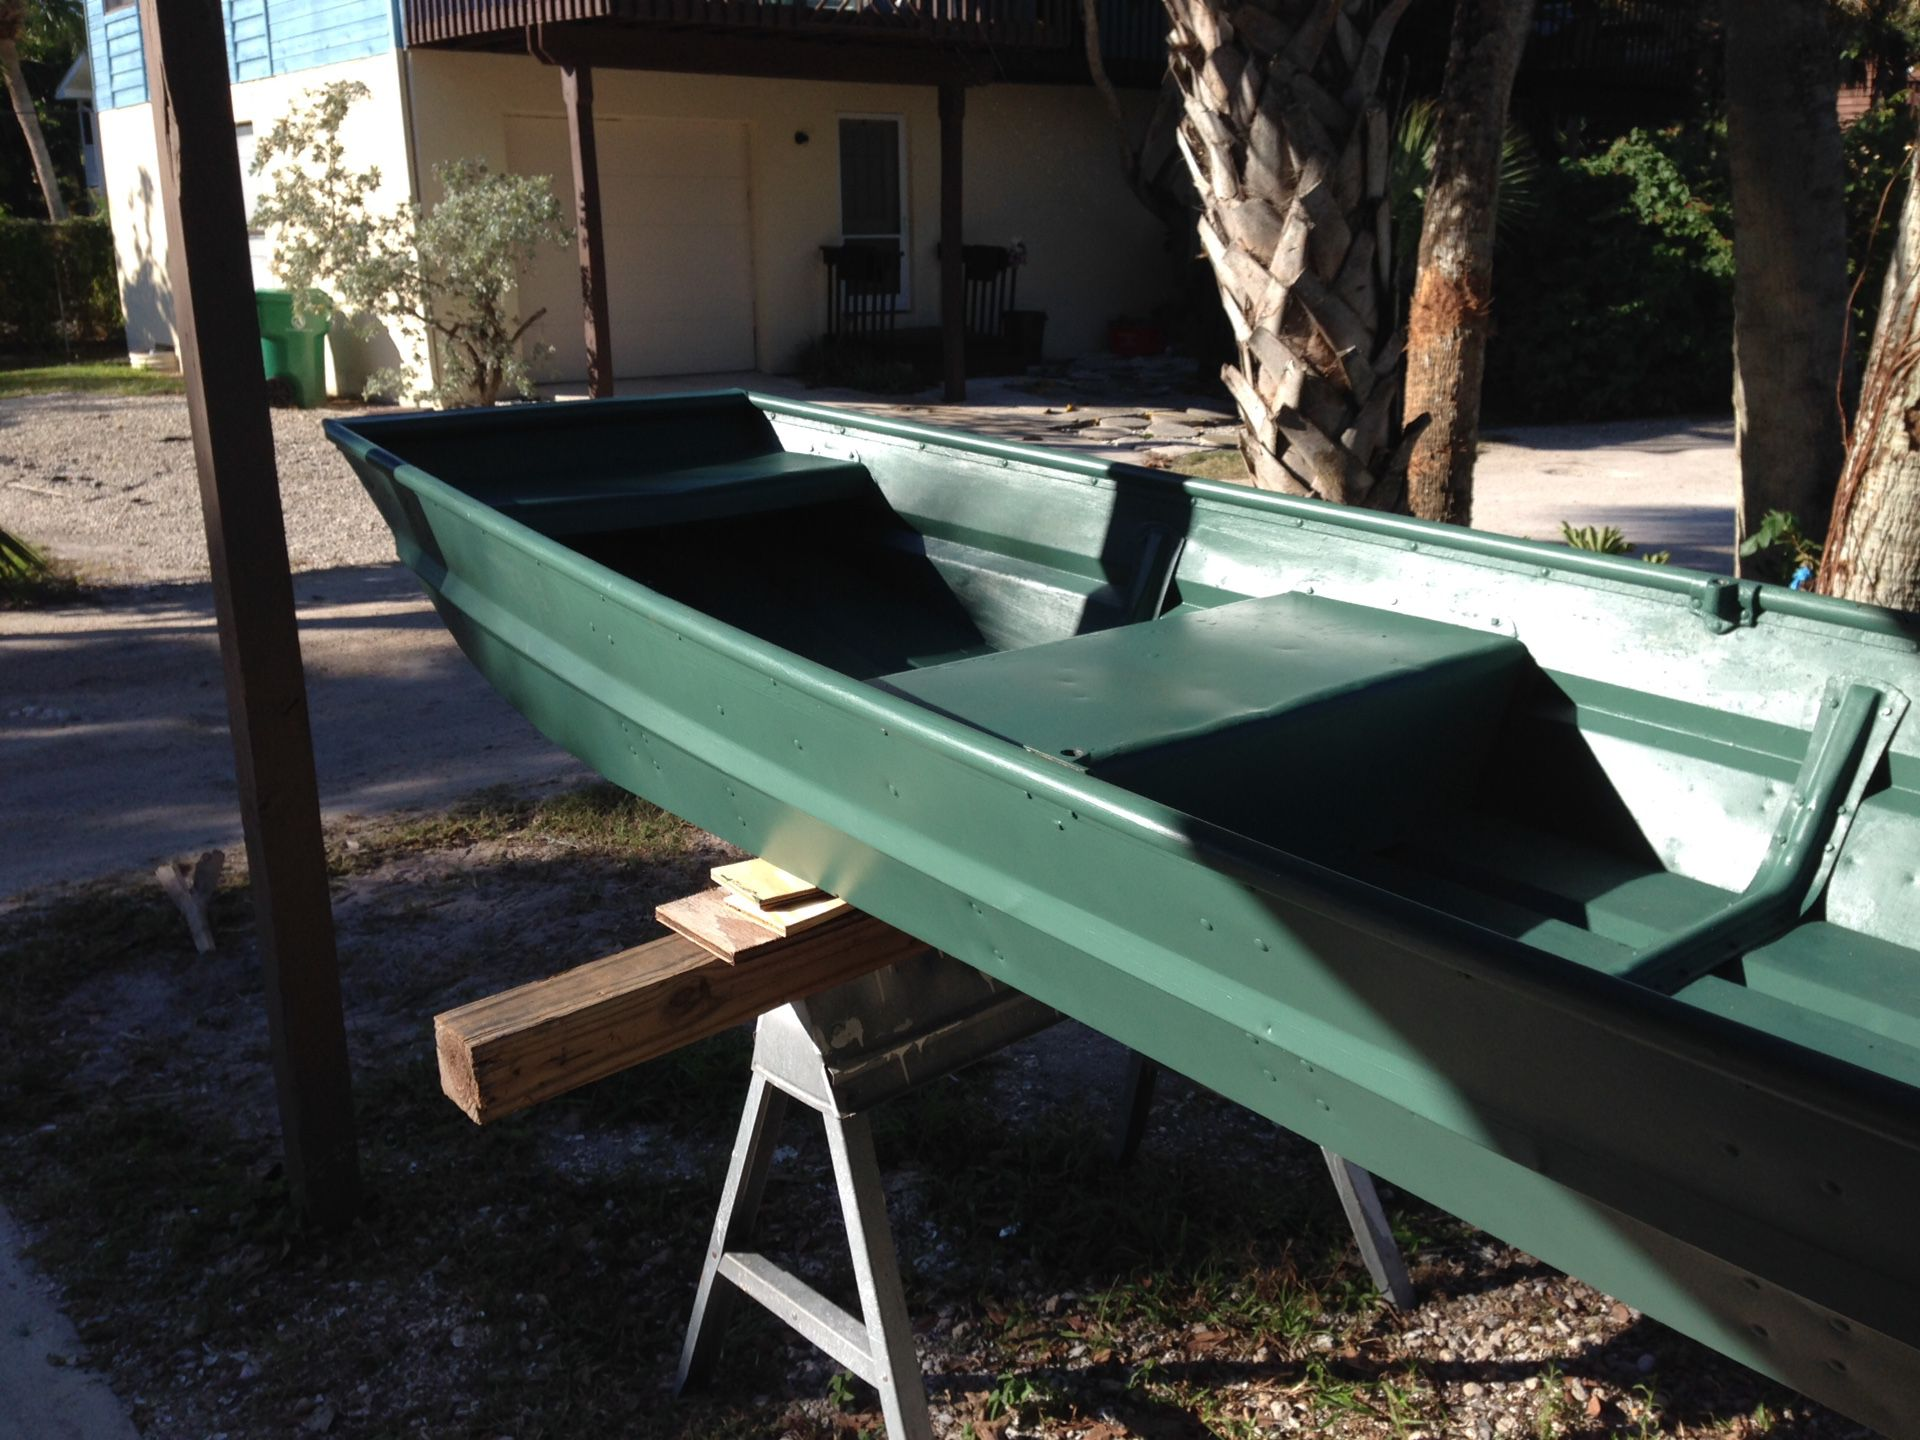 12 ft john boat with 4-1/2 hp mercury and trolling motor and accessories 650.00